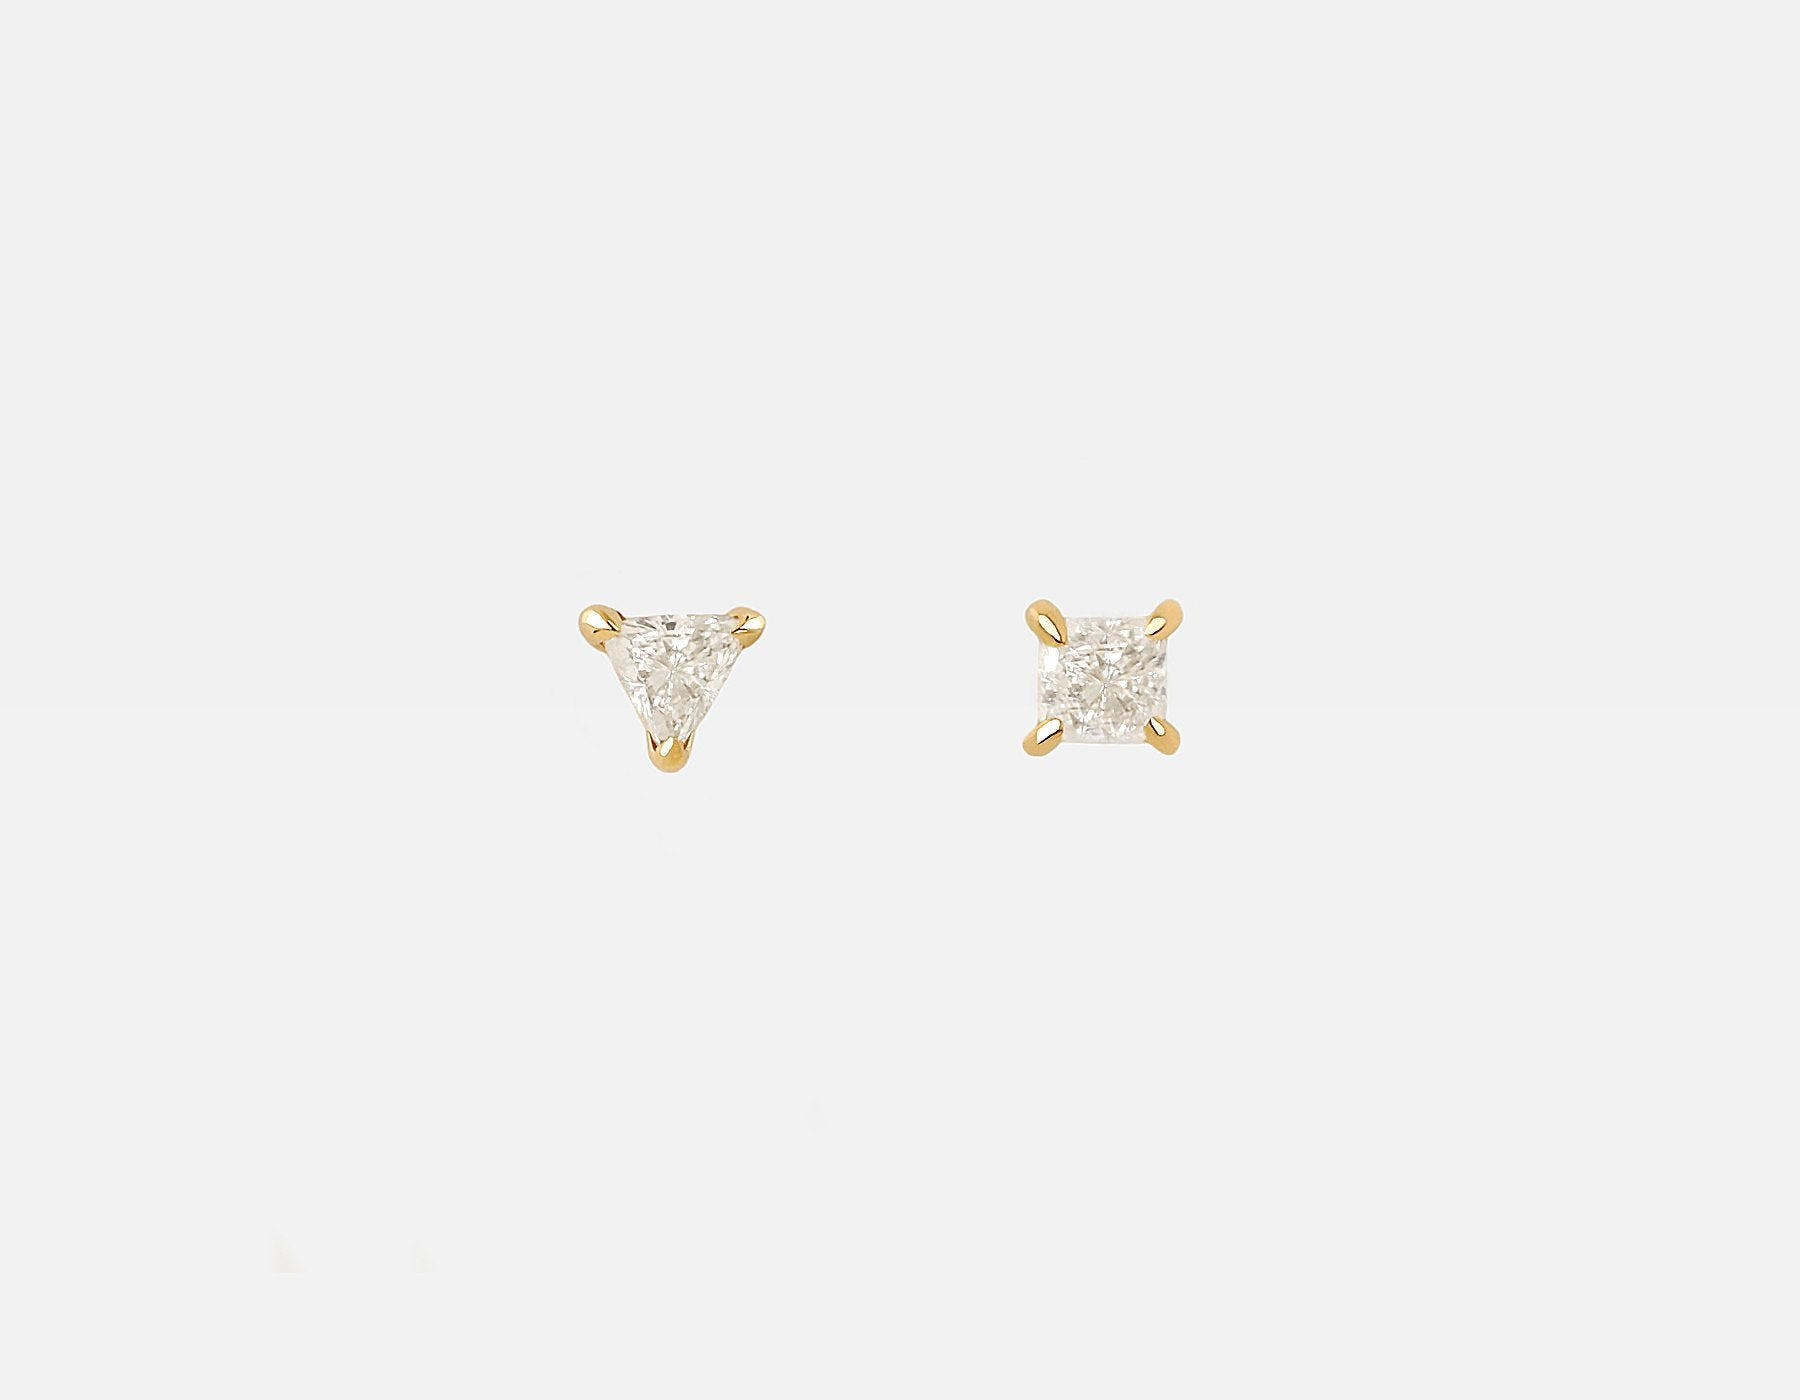 Vrai & Oro Limited Essentials Mini Mix Earrings